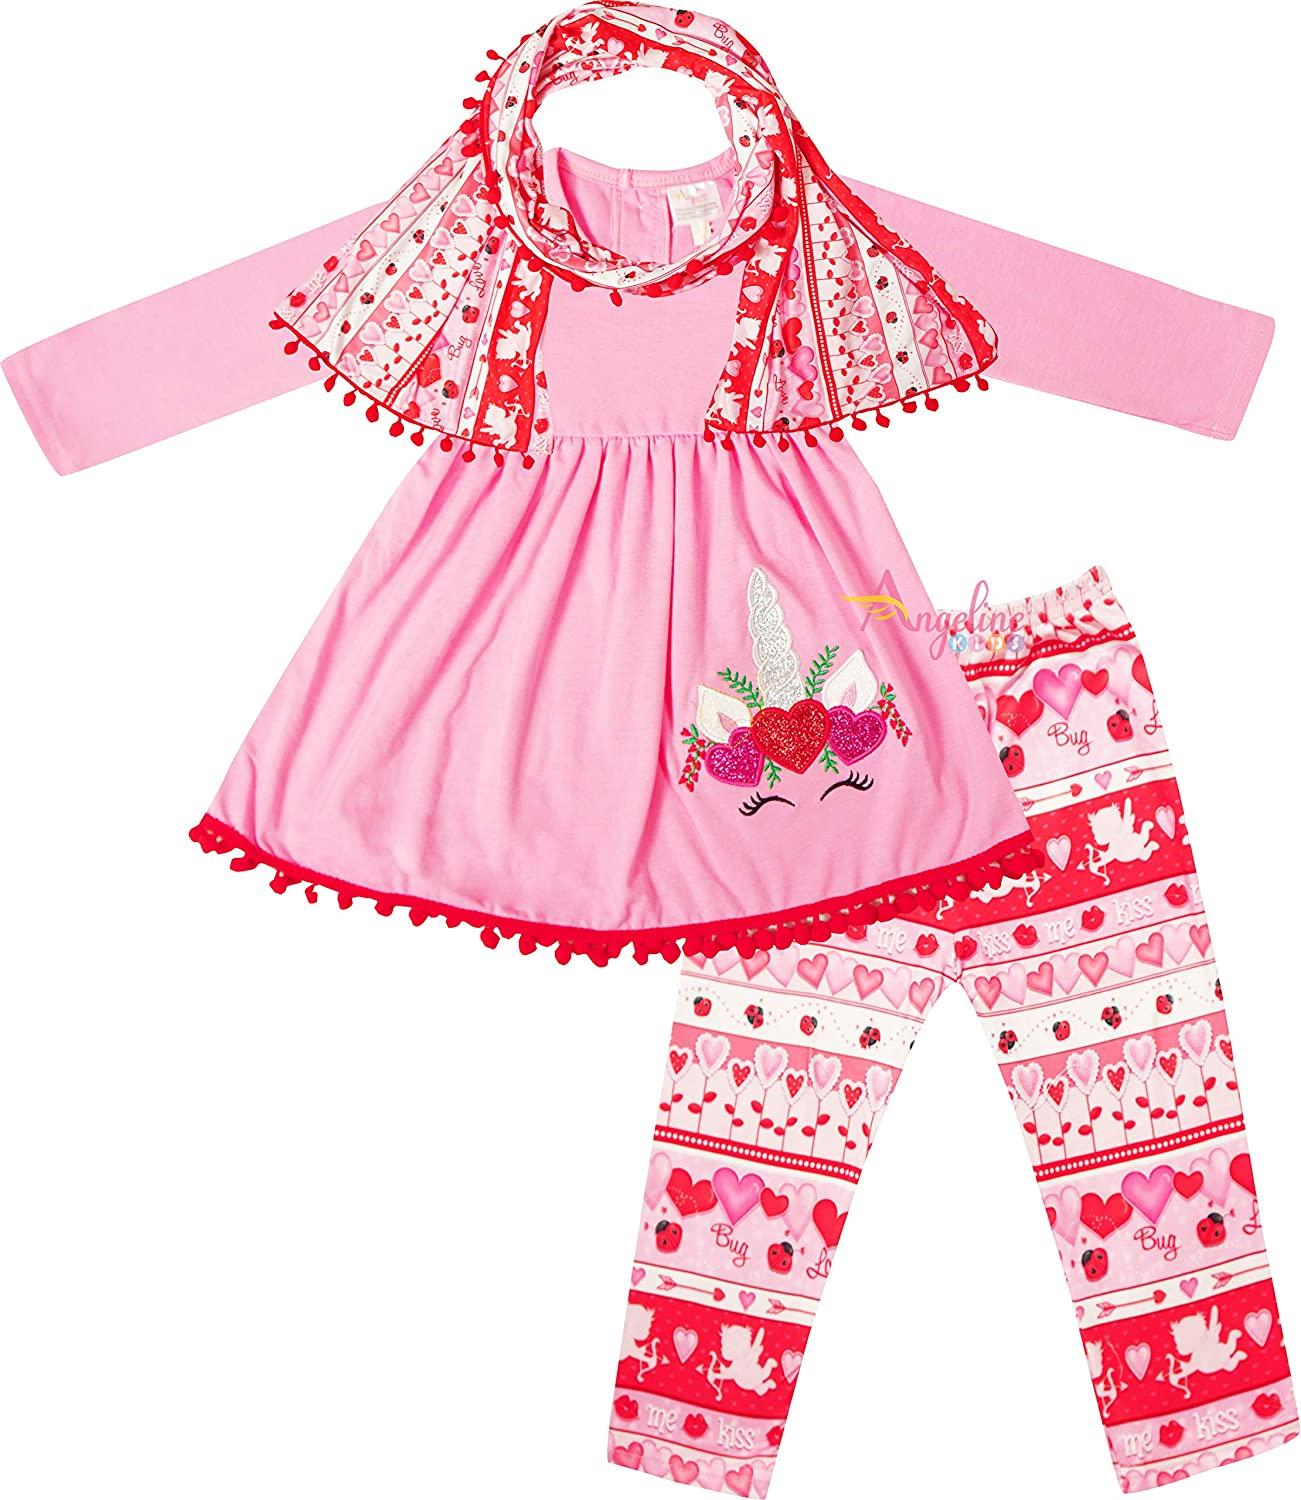 Baby Toddler Little Girls Valentines Day Applique Top Leggings Scarf Outfit 3-pc Set